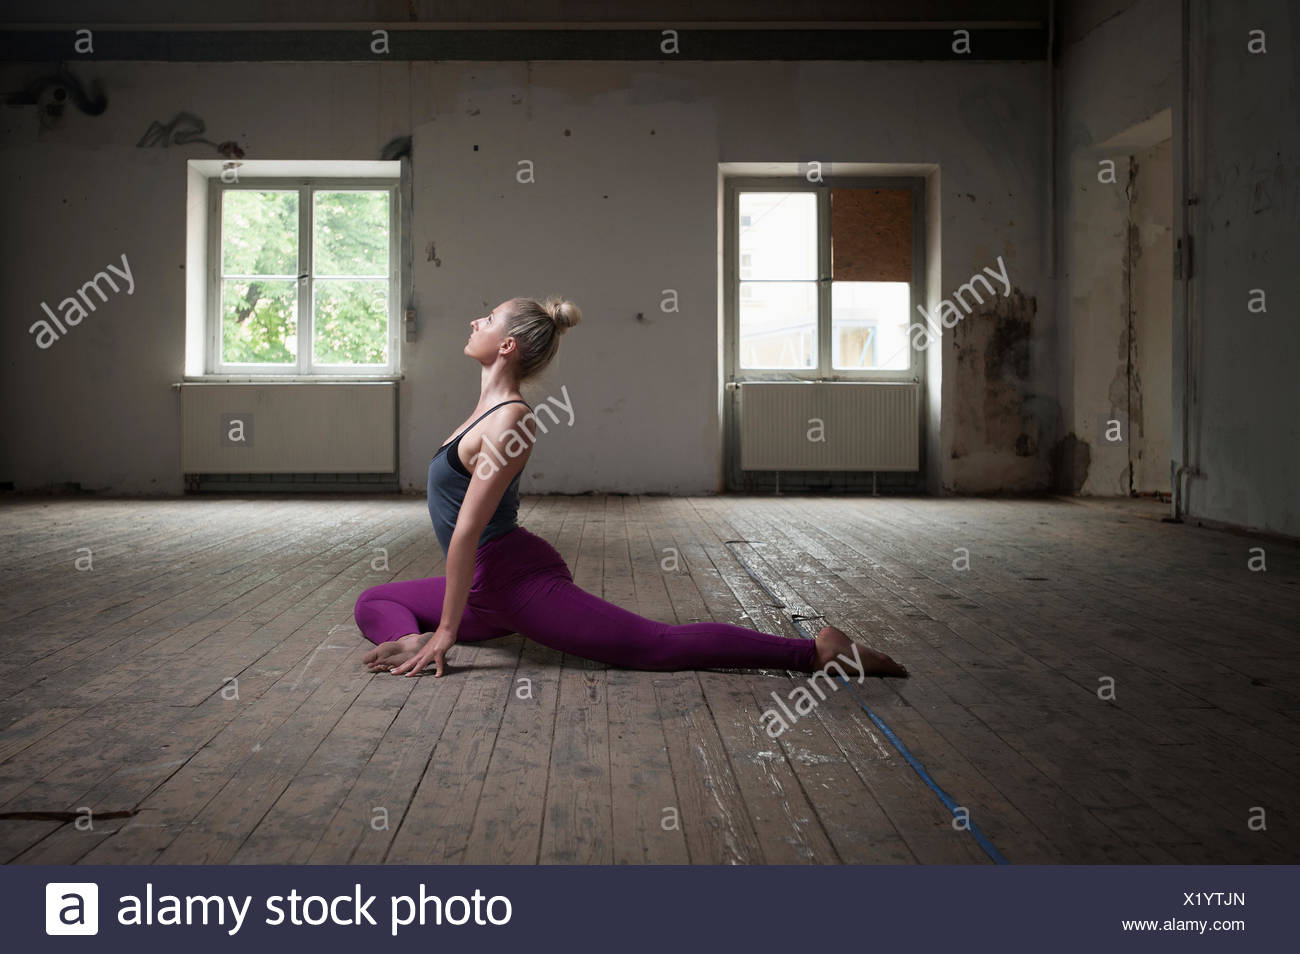 Mid adult woman practicing pigeon pose in yoga studio, Munich, Bavaria, Germany - Stock Image